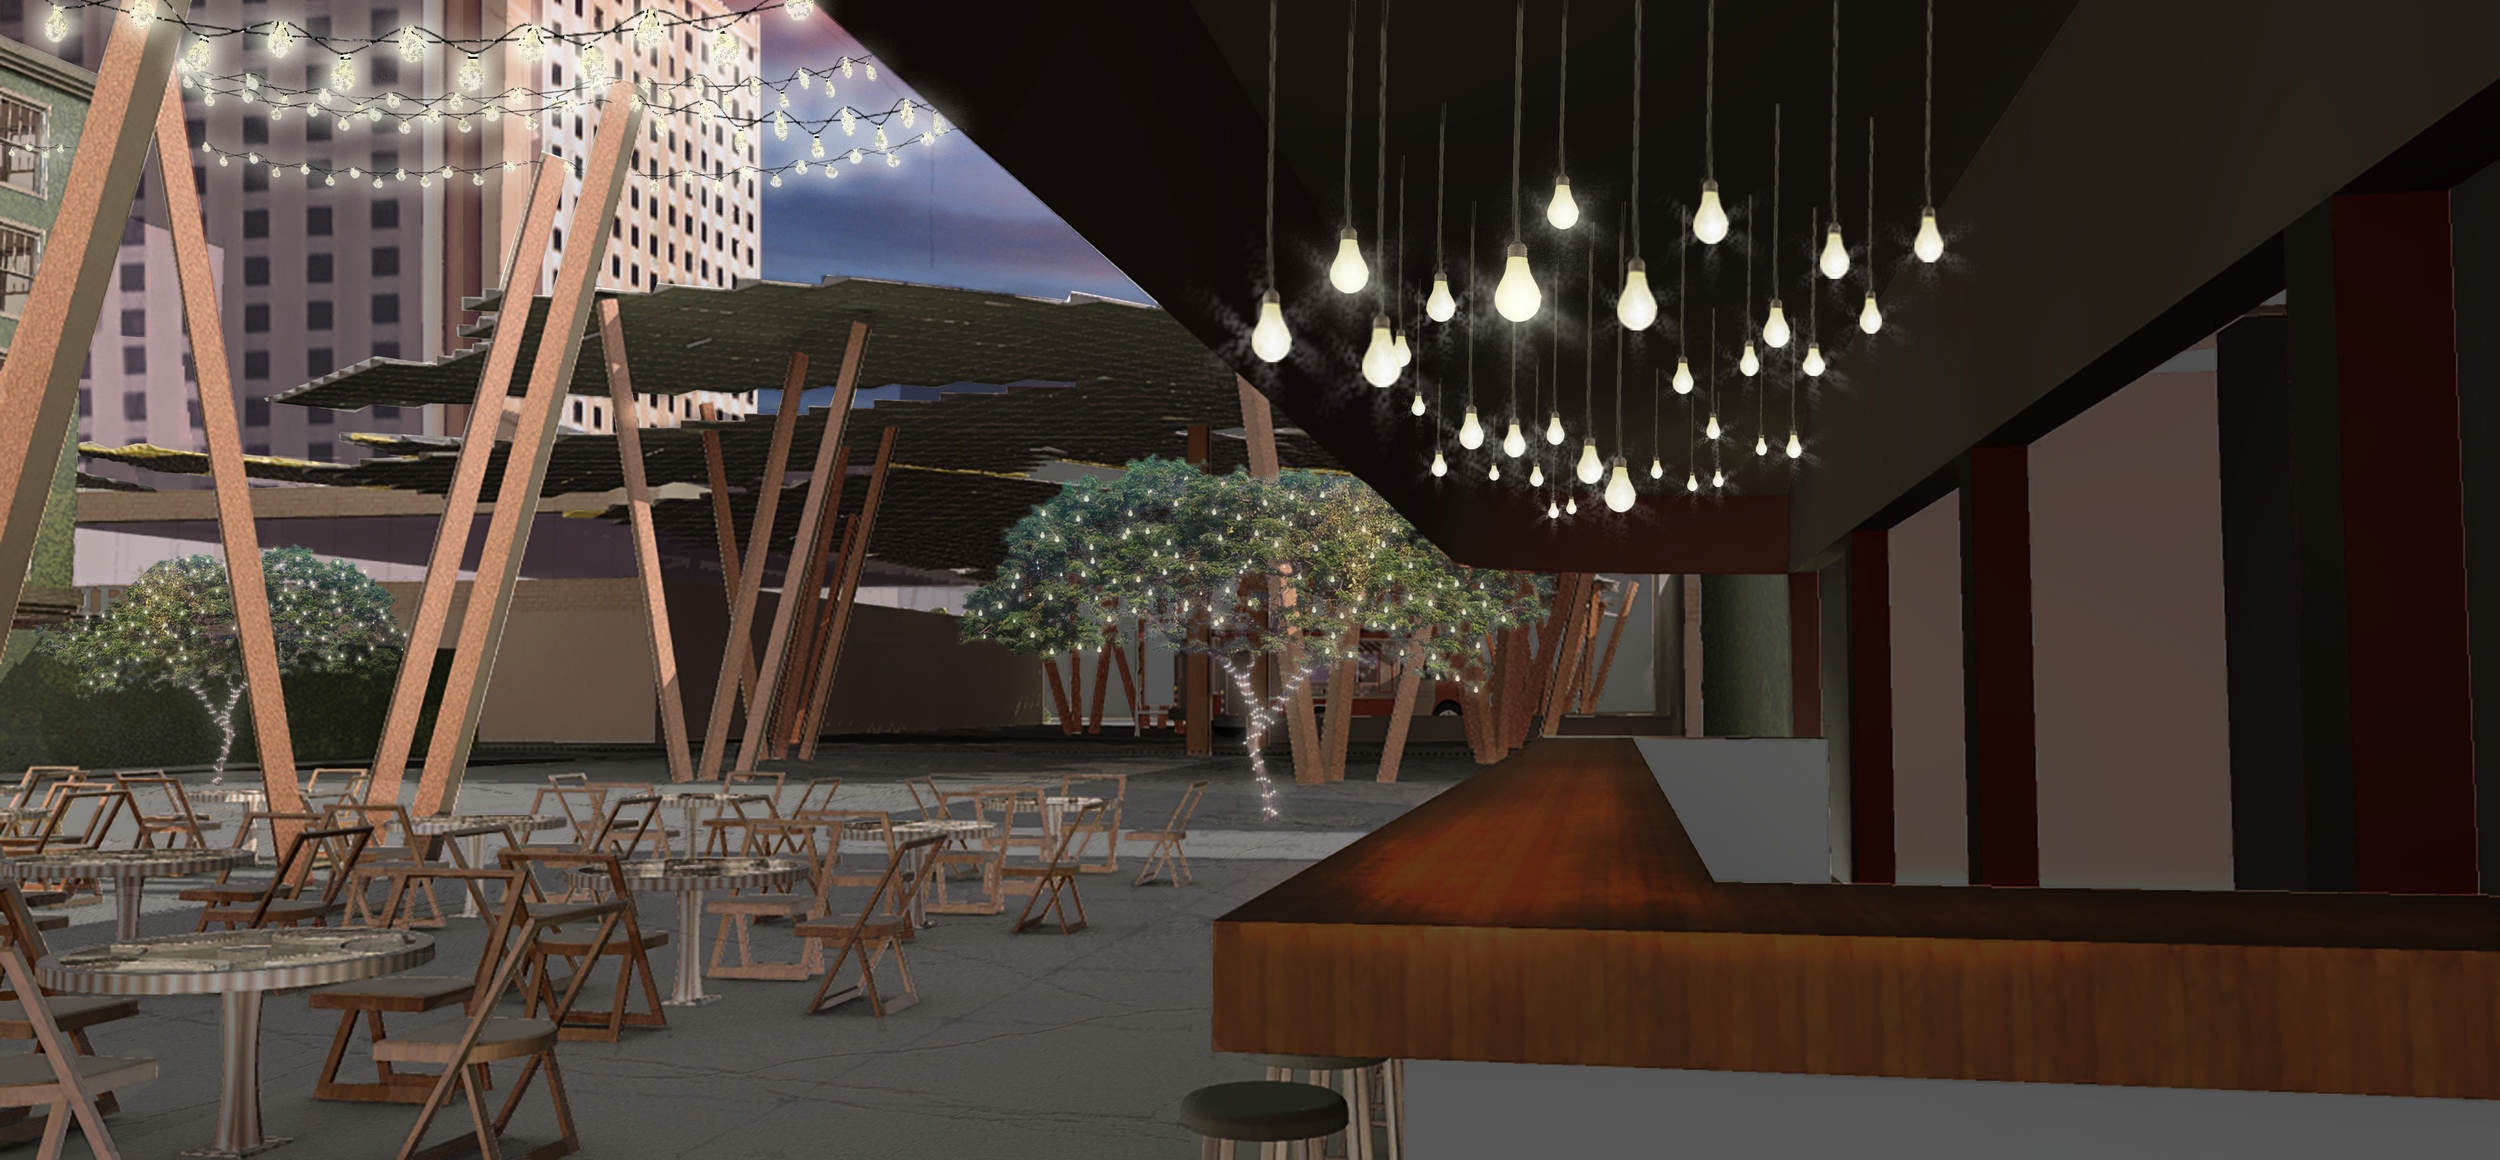 This image is the overlay of Sketchup and Kerkythea images with some added trees, lights, sky, and background buildings.